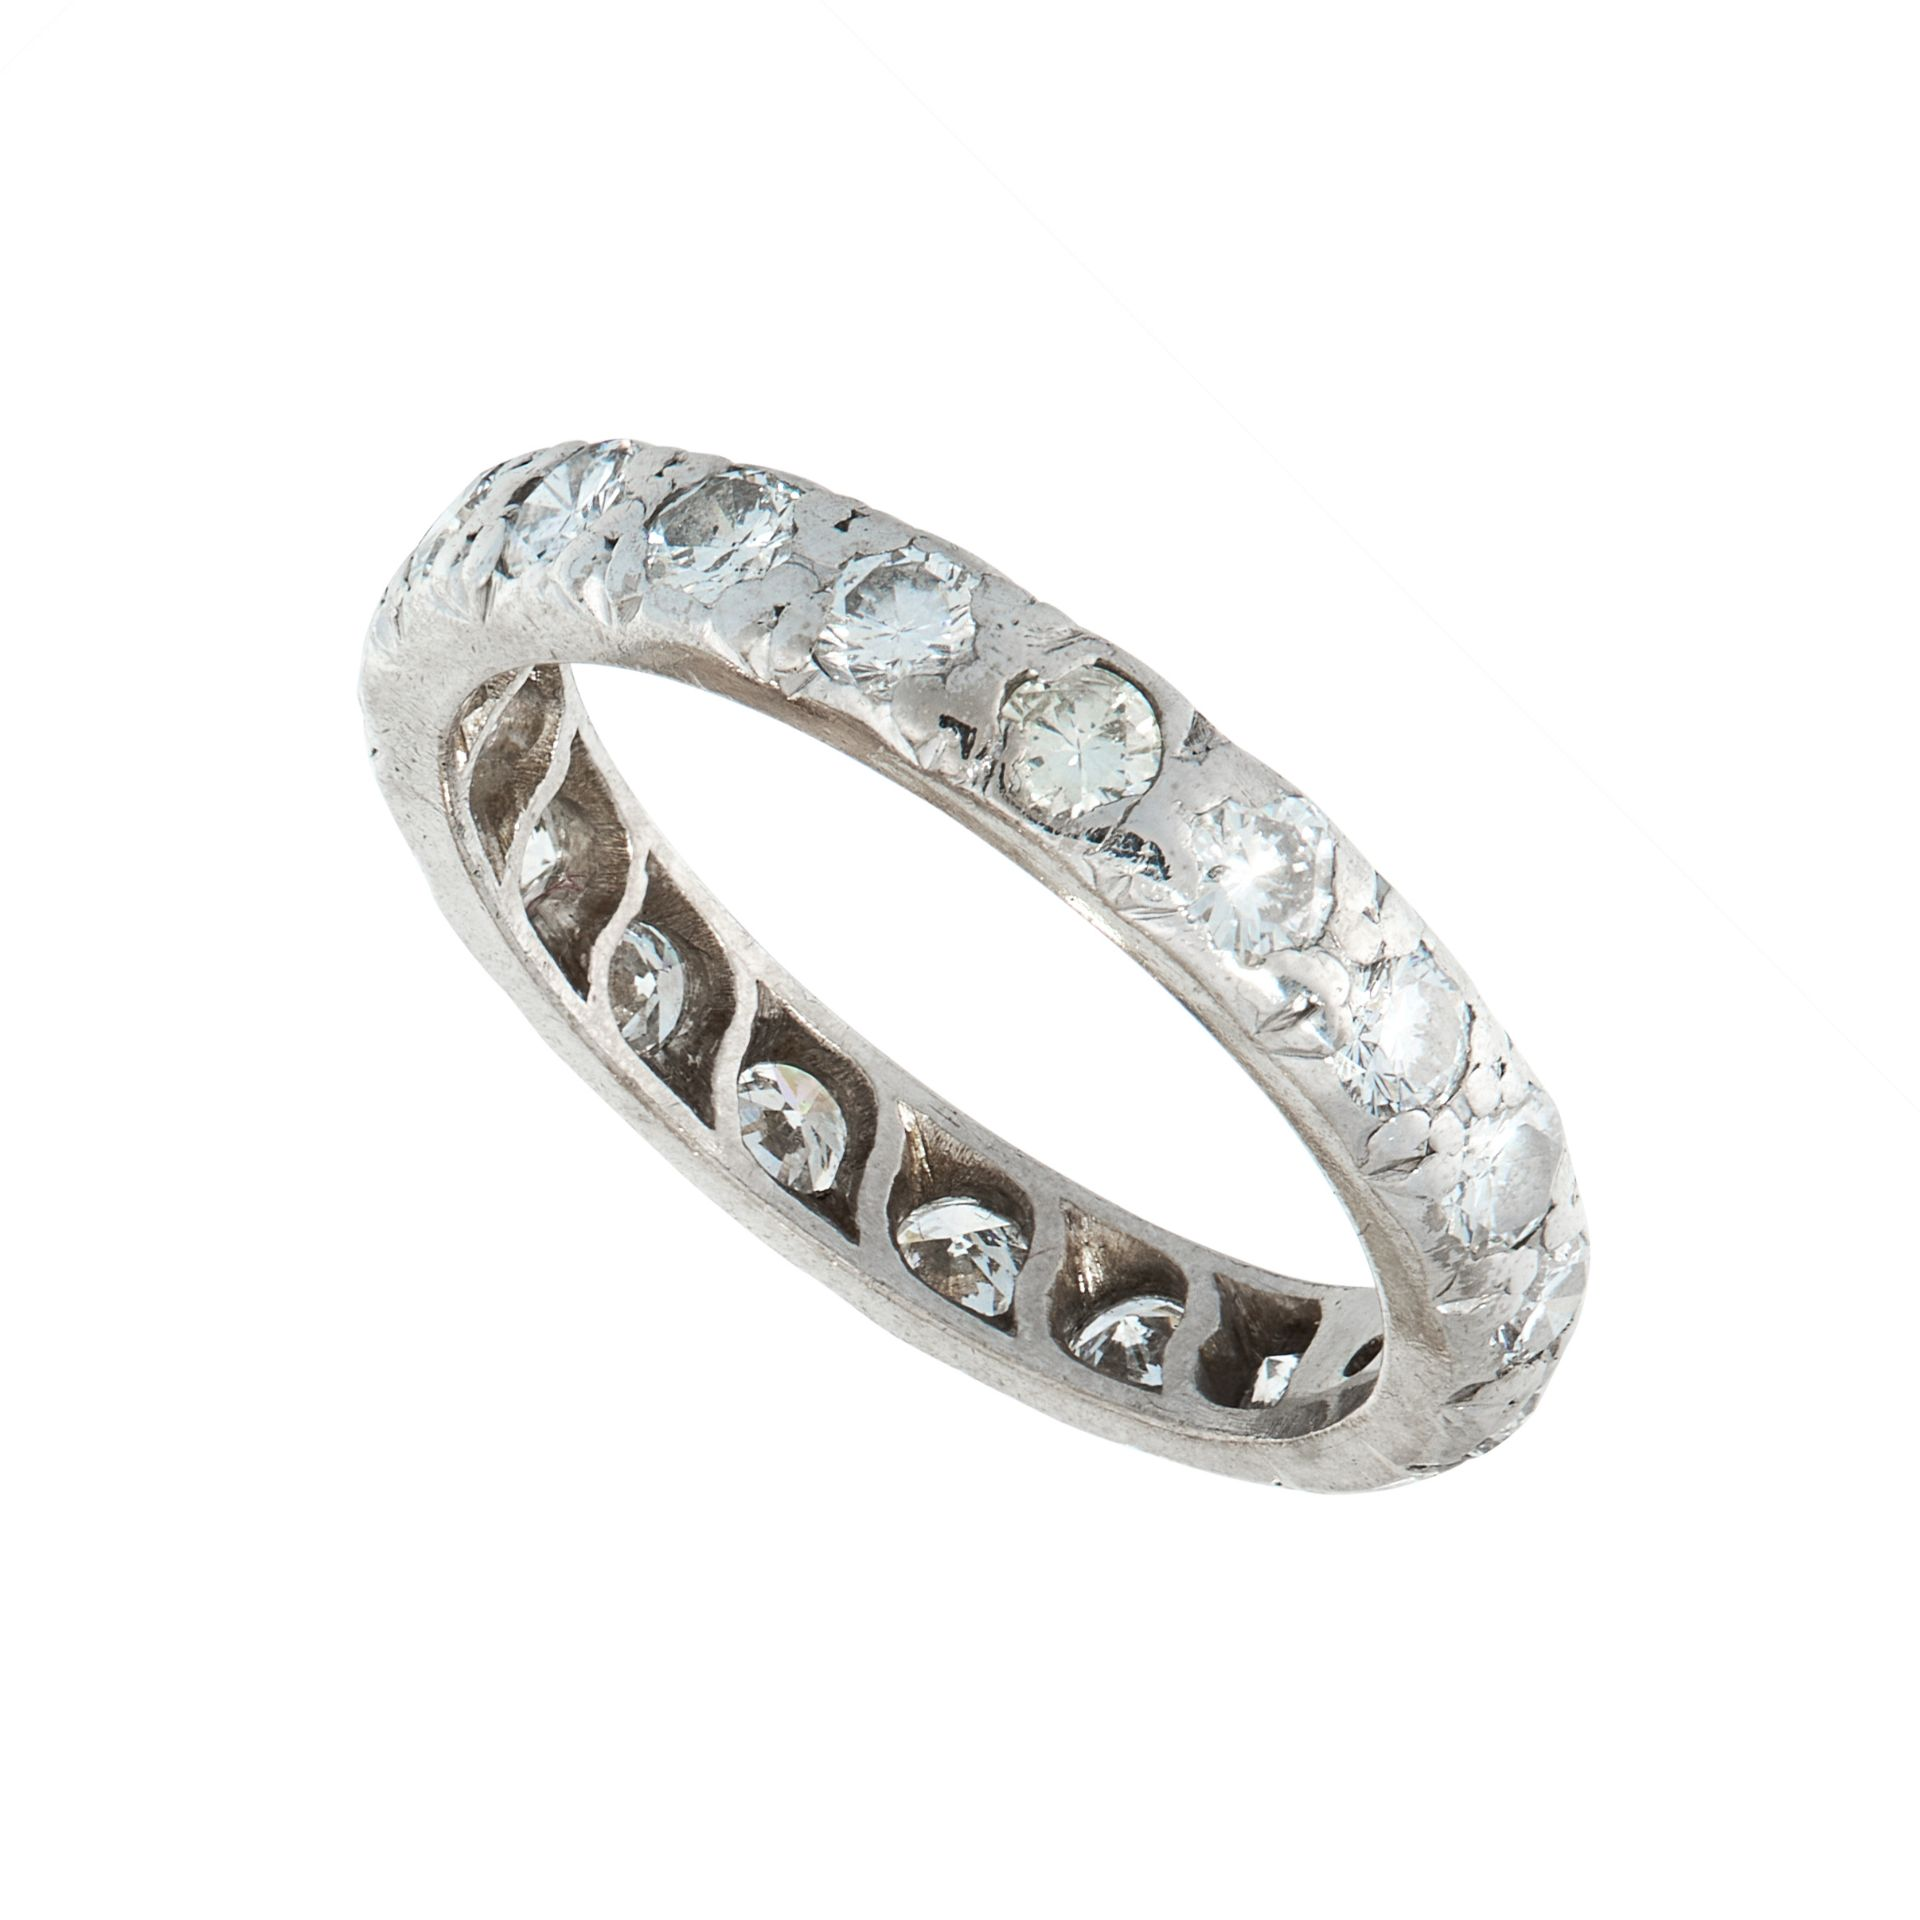 A DIAMOND ETERNITY RING the band set all around with a single row of round cut diamonds, all - Image 2 of 2